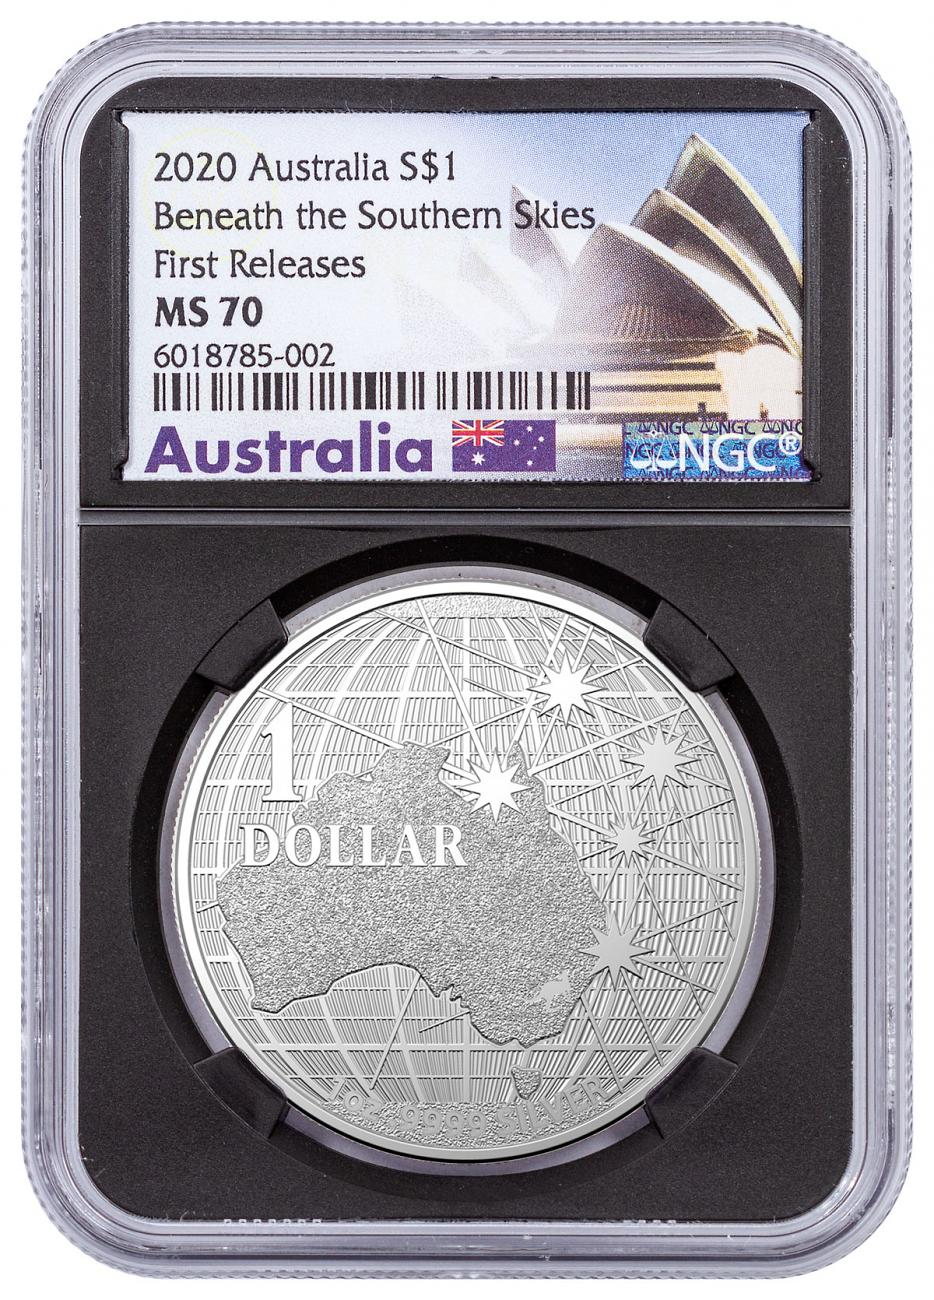 2020 Australia Beneath the Southern Skies 1 oz Silver $1 Coin NGC MS70 FR Black Core Holder Opera House Label